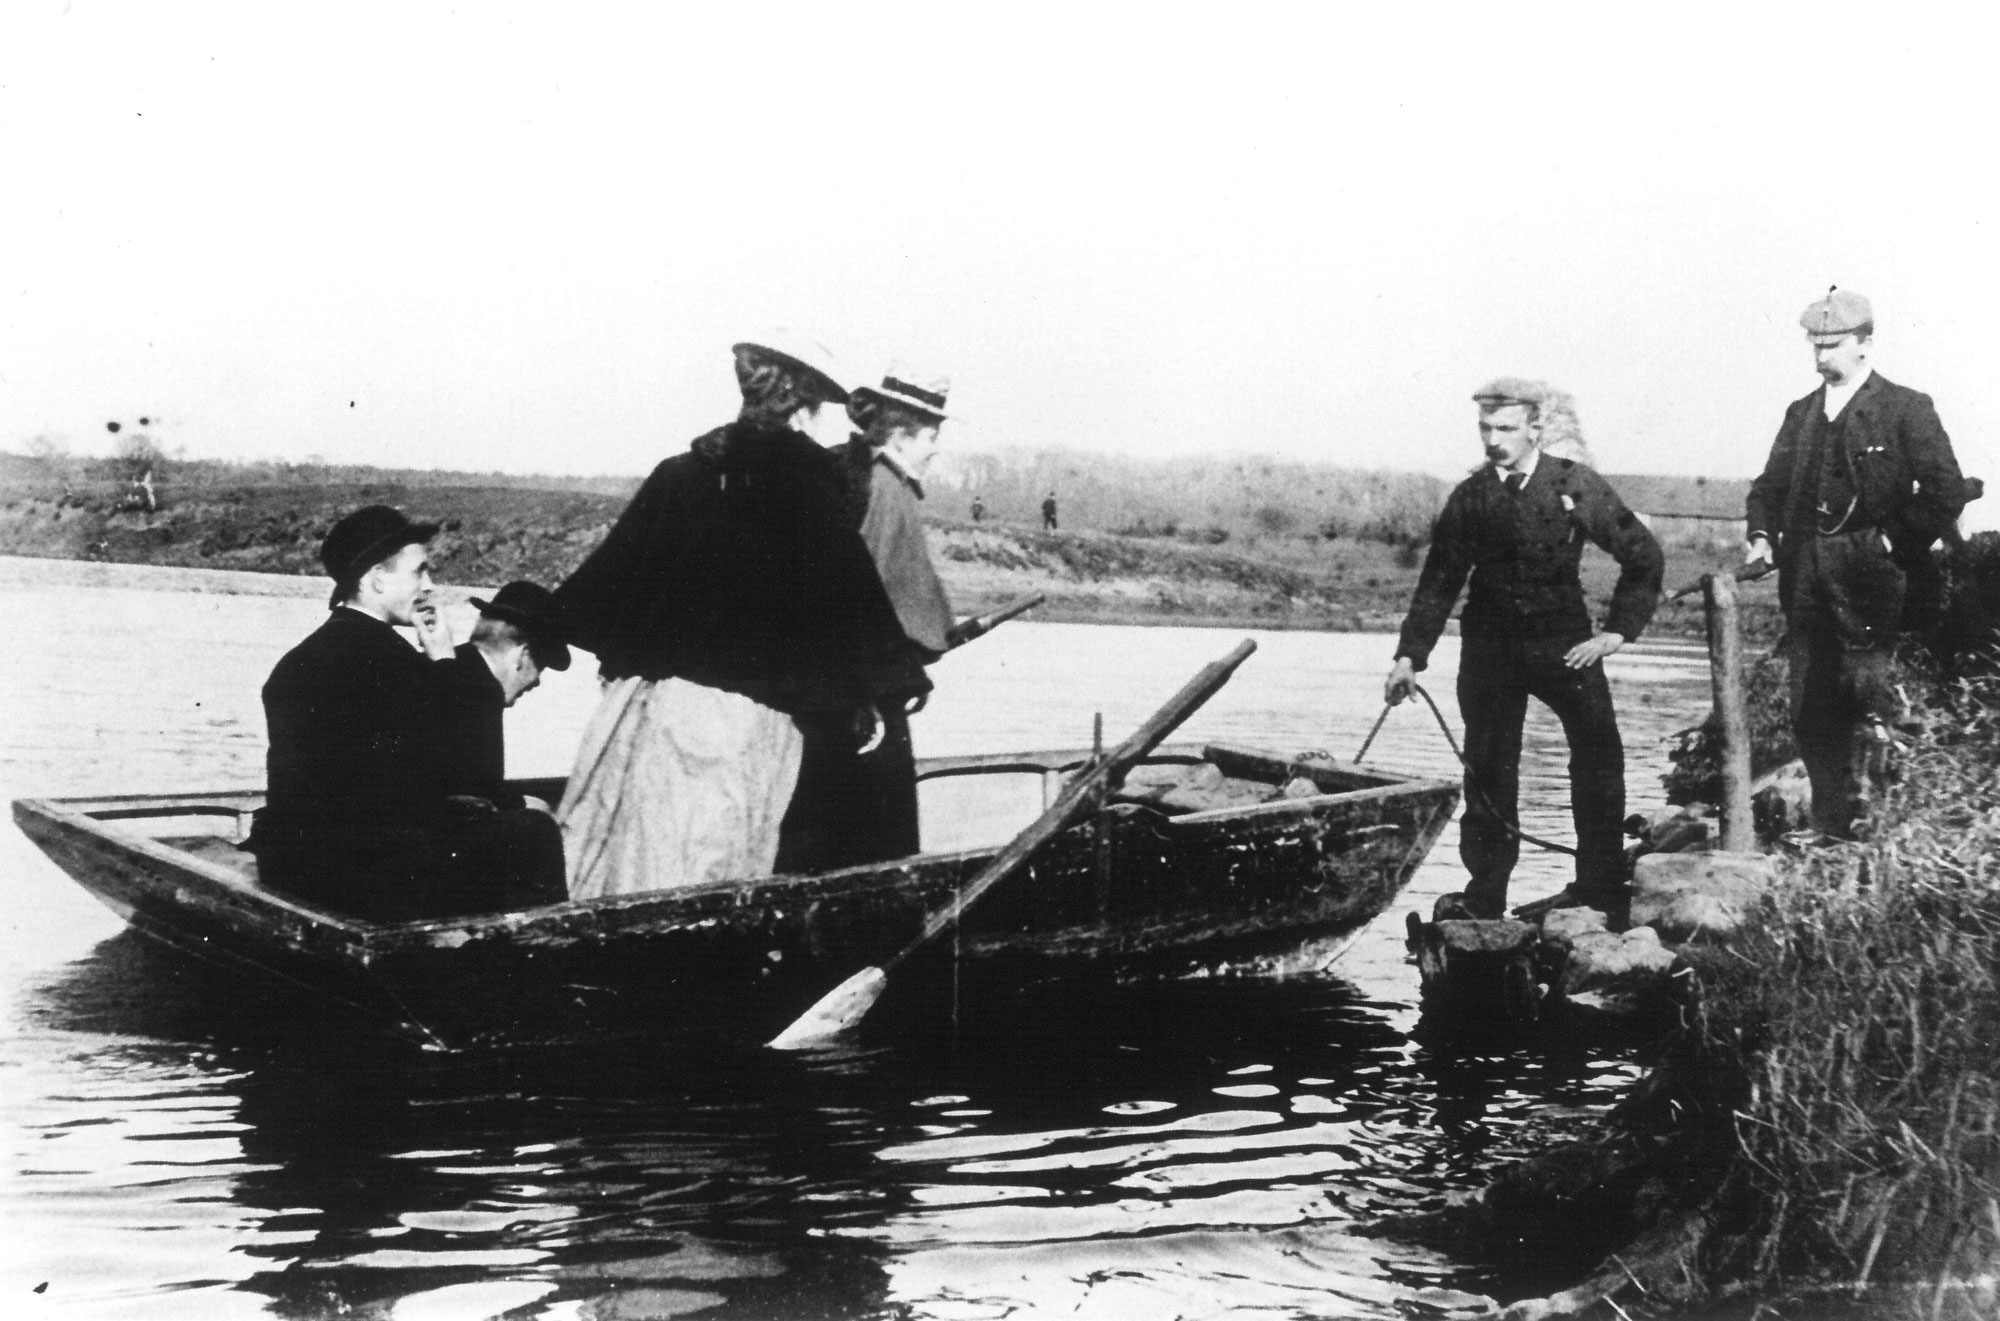 an old photo of people disembarking from a boat on a river bank